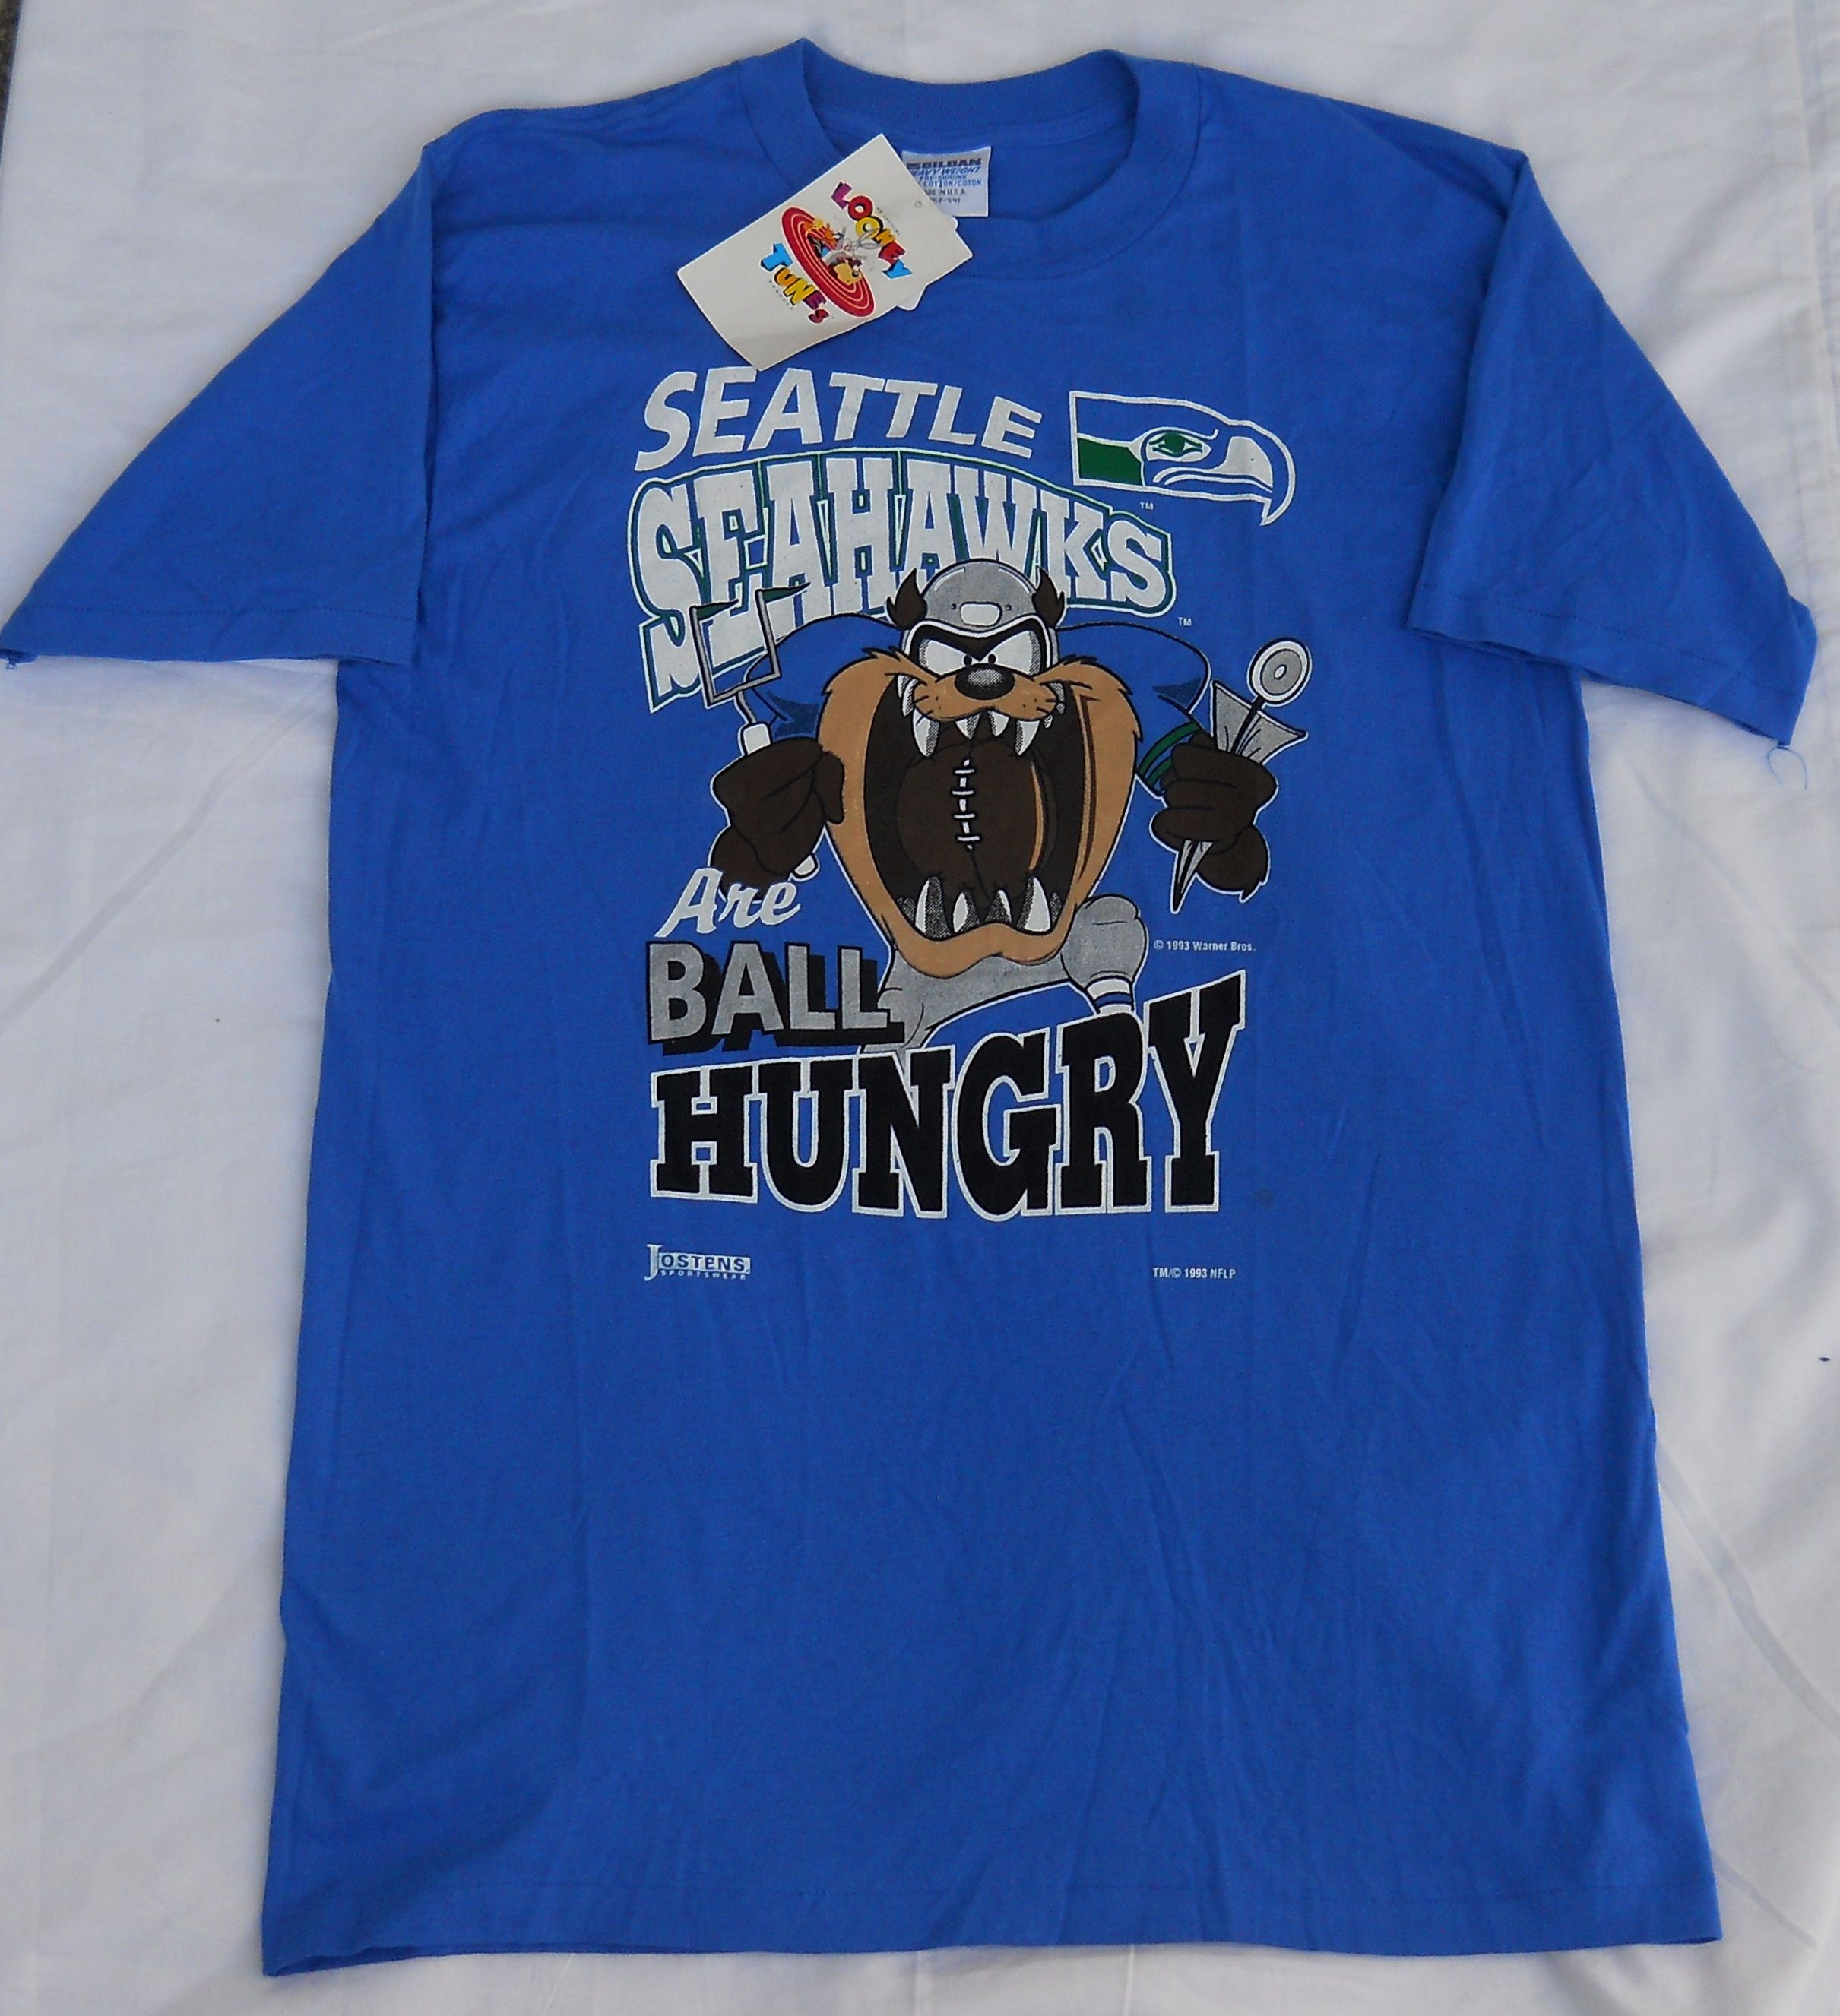 e4826fba7952a Vintage Seattle Seahawks Looney Tunes T-Shirt. Men's Medium/Large ...